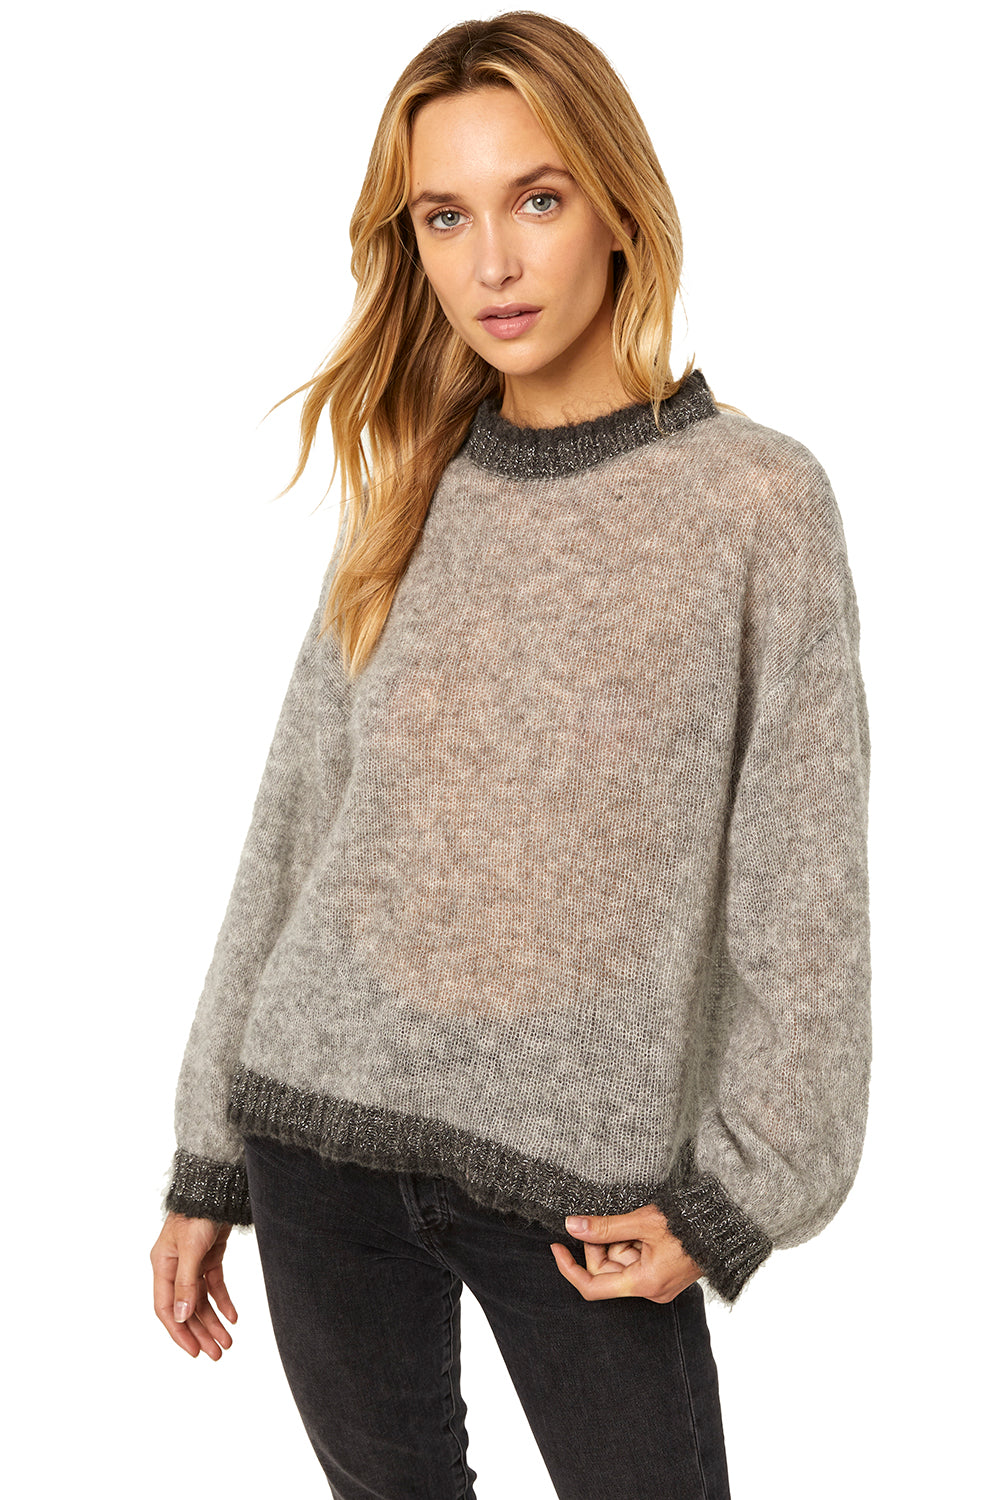 HEIDI SWEATER - MISA Los Angeles